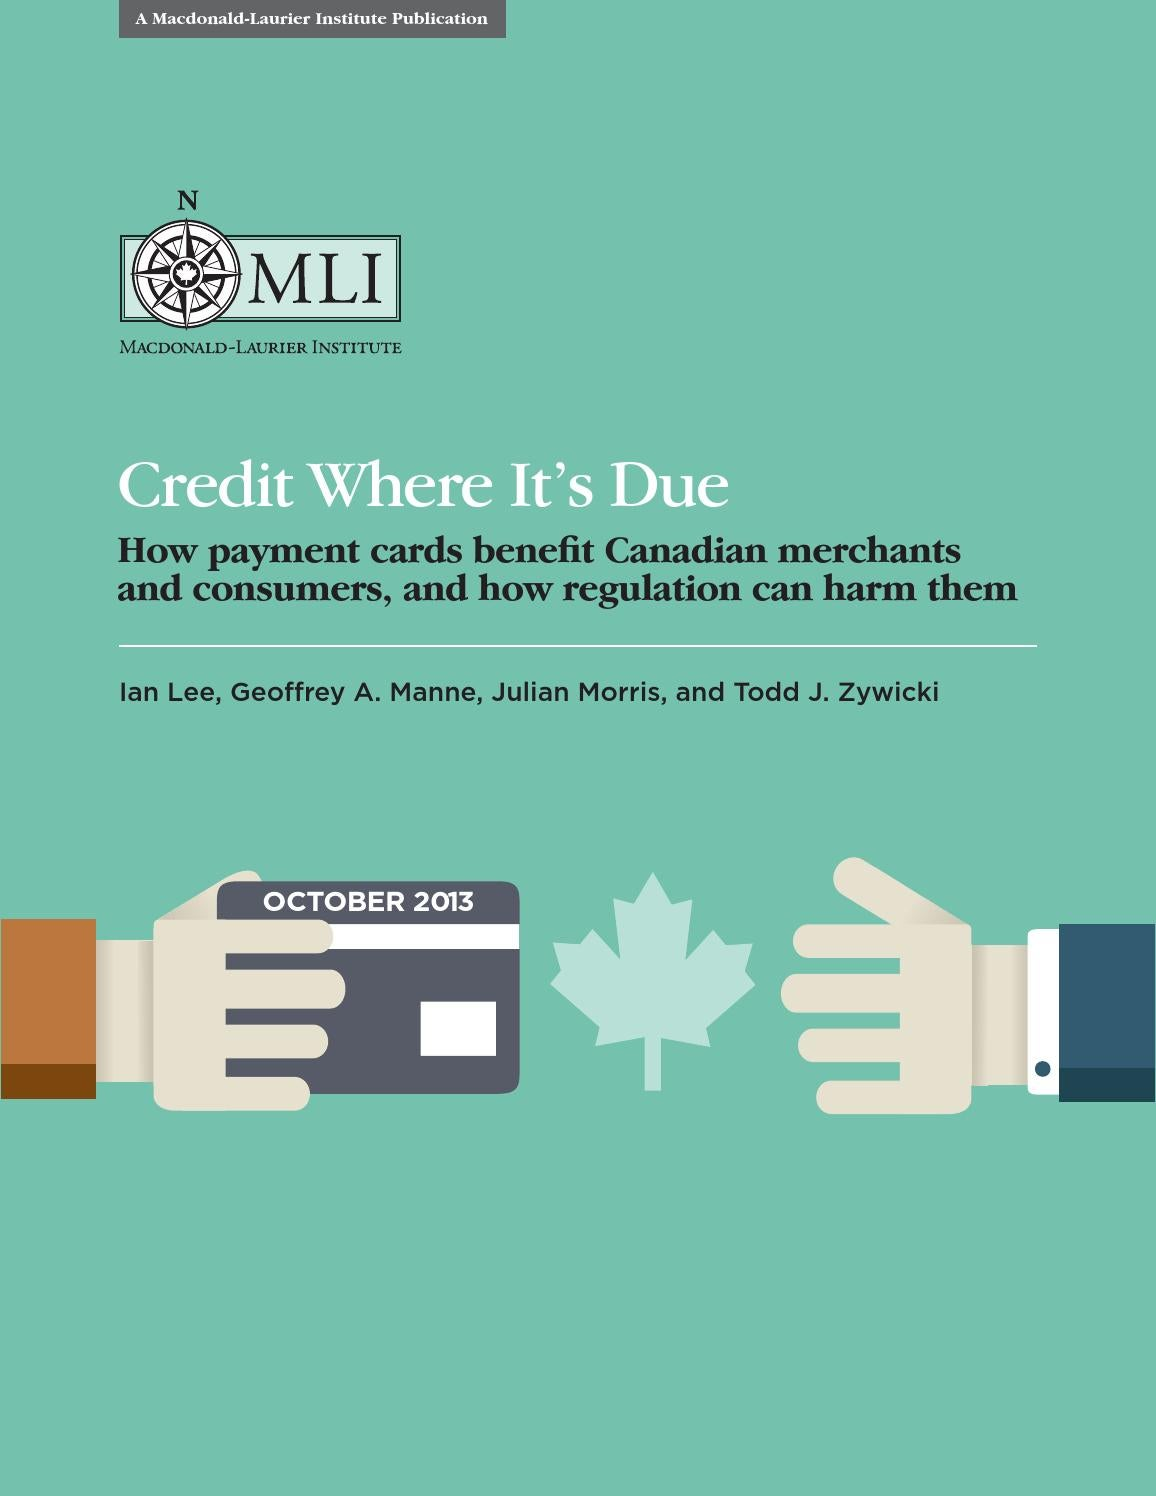 Credit Where It\'s Due by The Macdonald-Laurier Institute - issuu